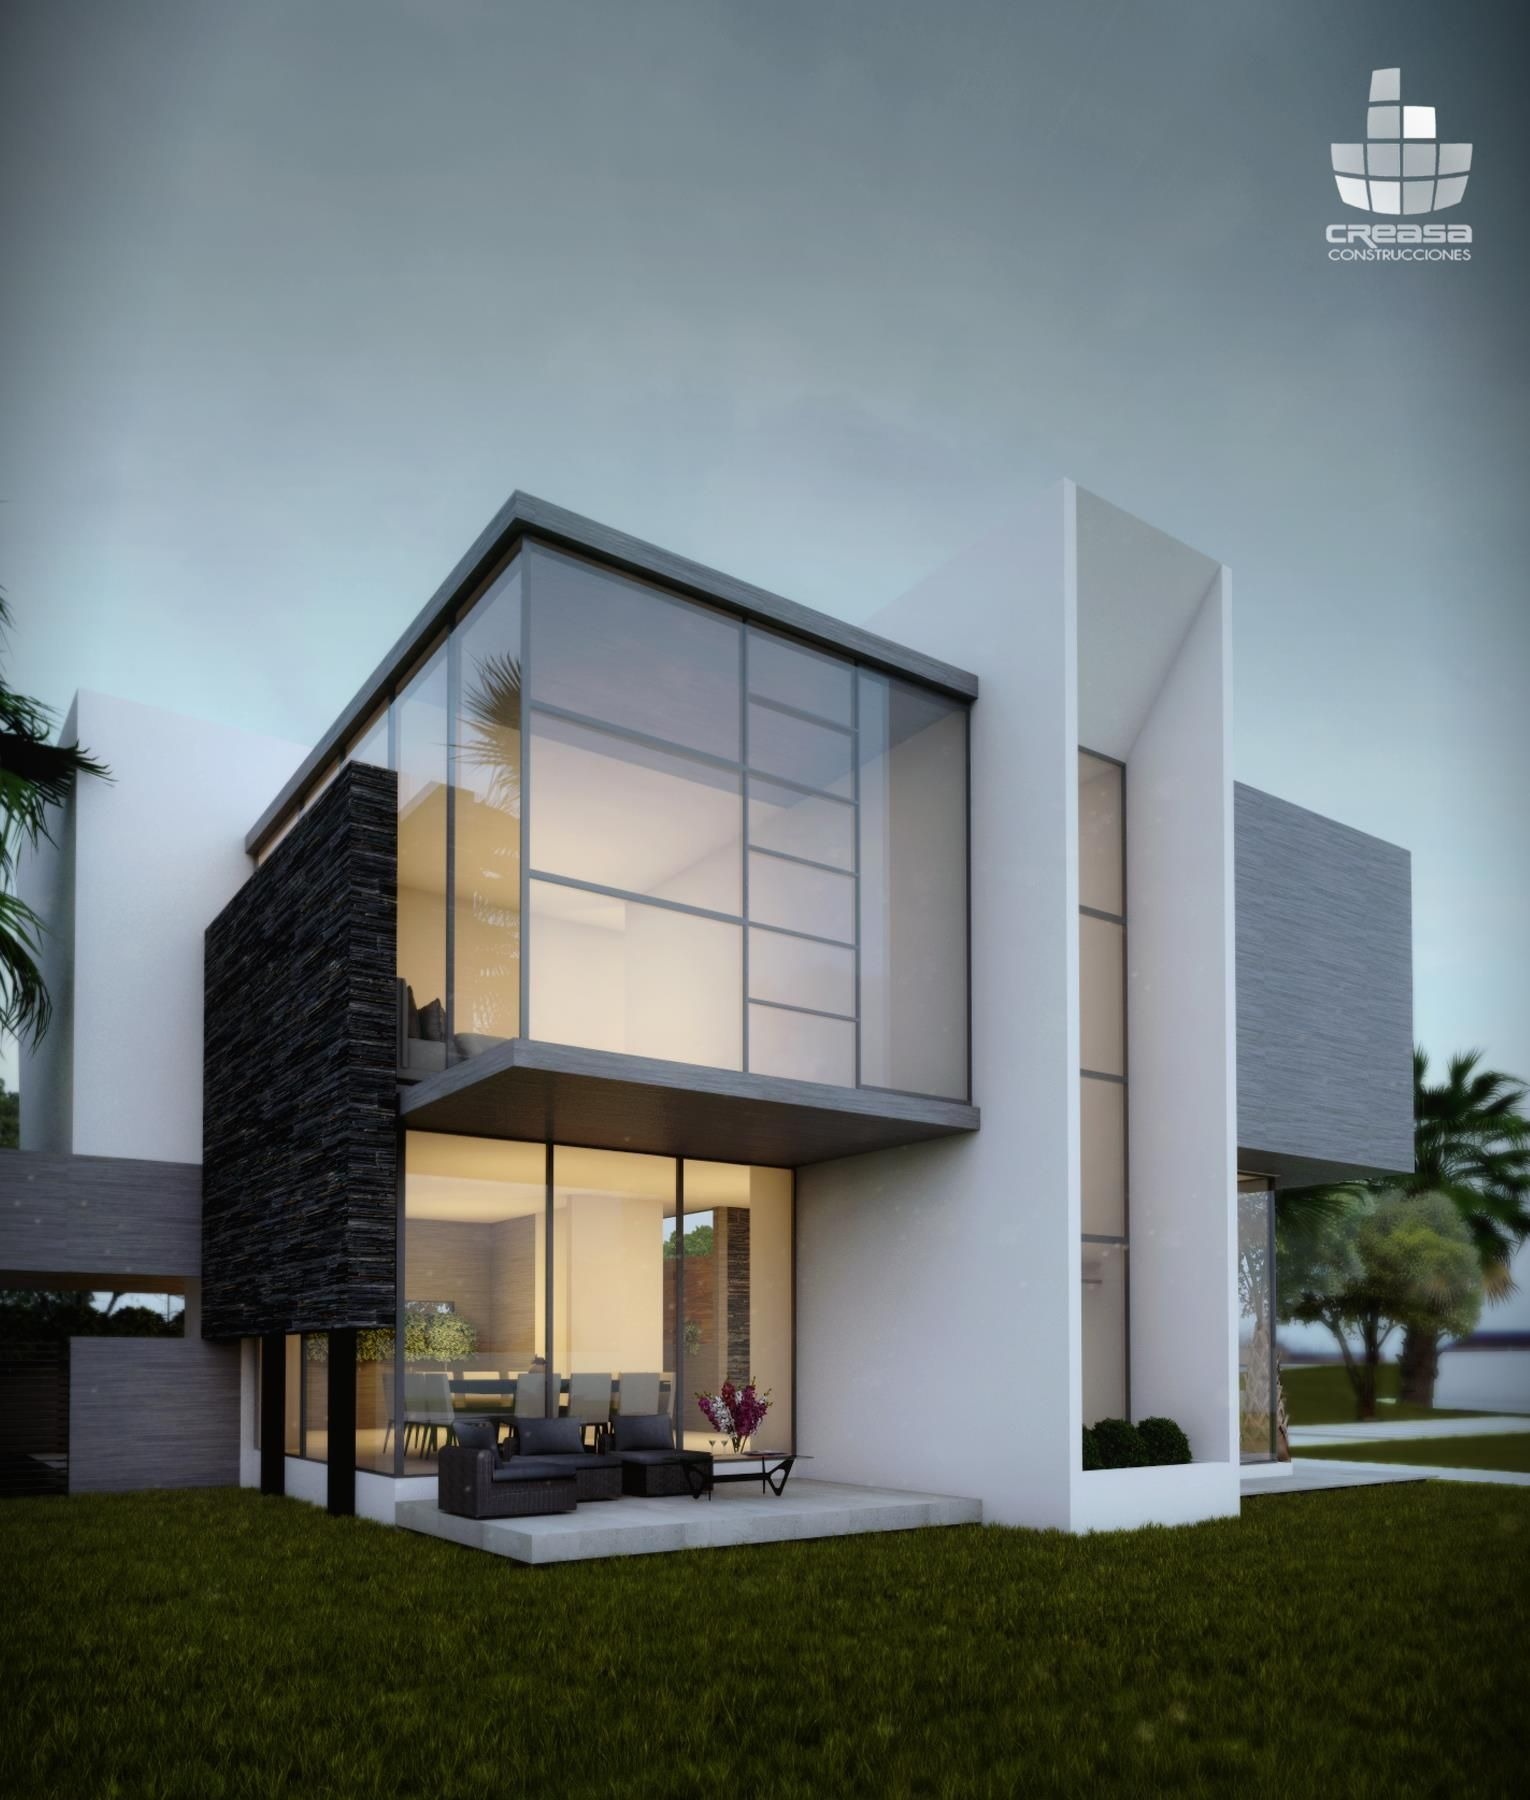 Creasa modern architecture pinterest villas house for Modern tower house designs